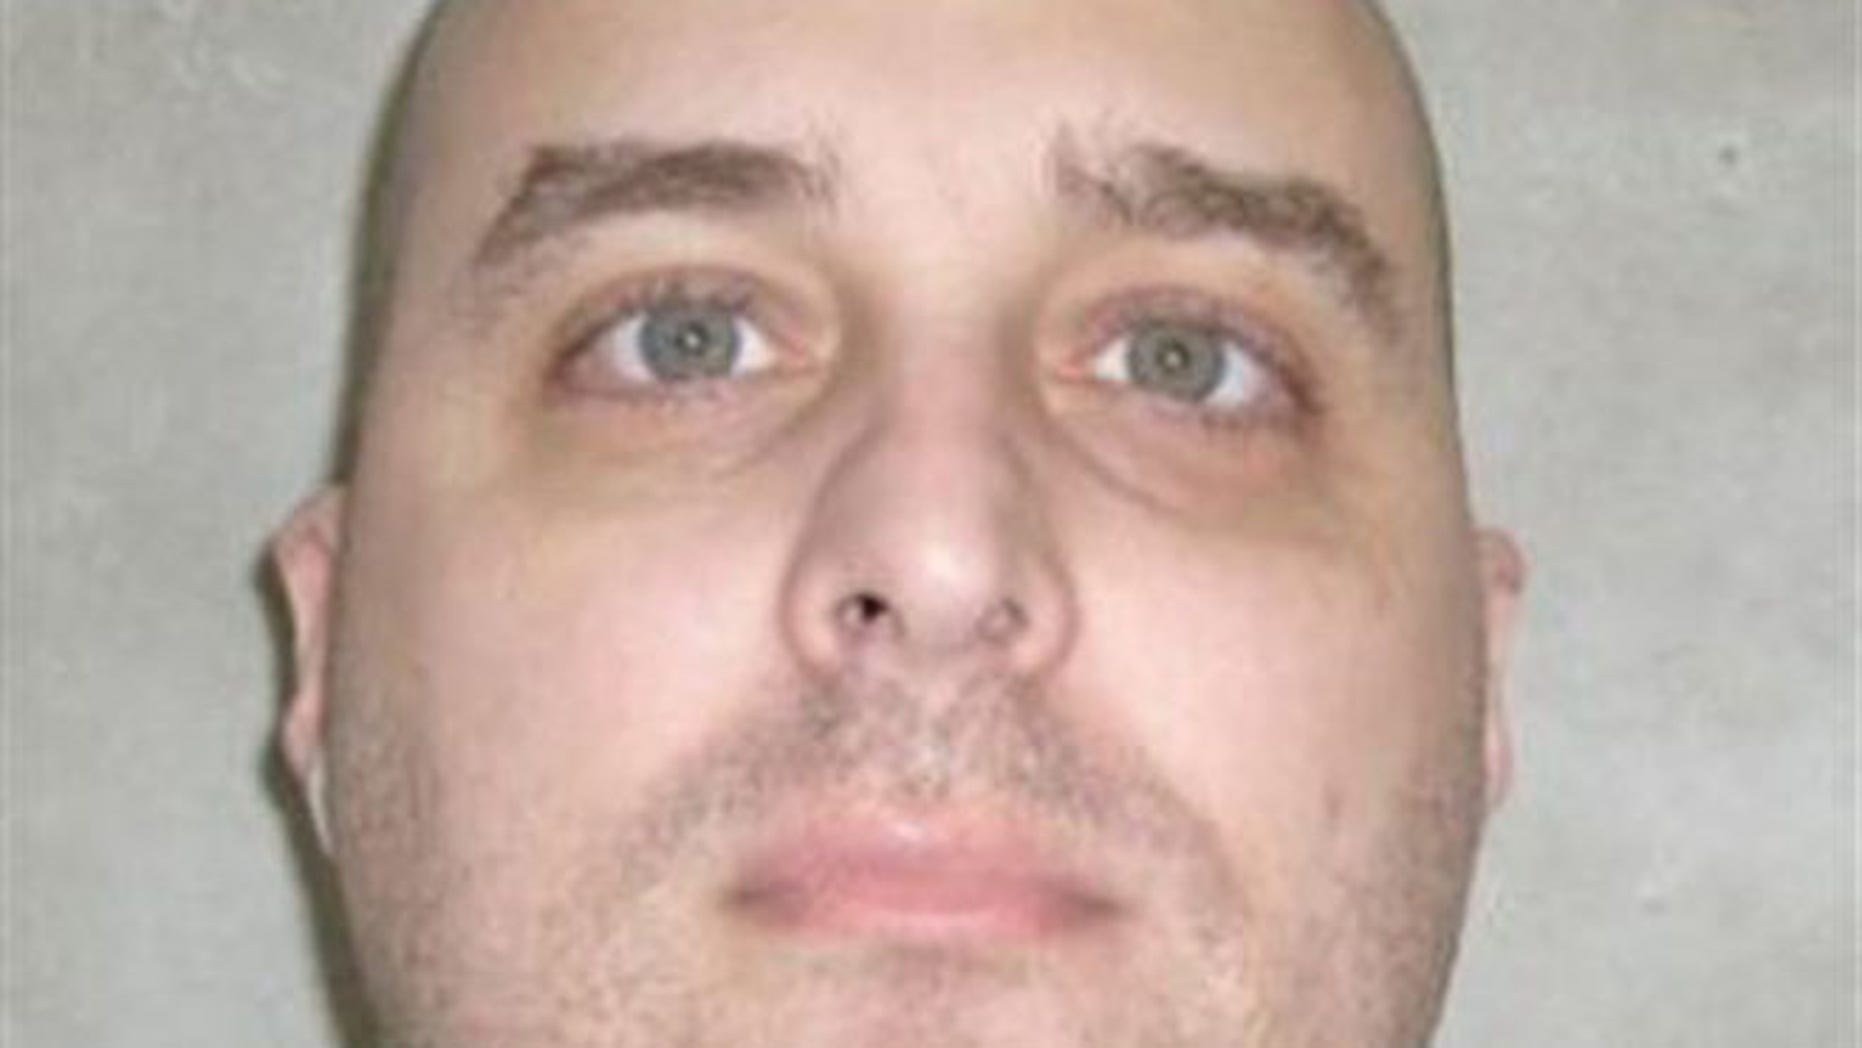 June 29, 2011: In this photo provided by the Oklahoma Department of Corrections, Michael E. Hooper is pictured in McAlester, Okla.